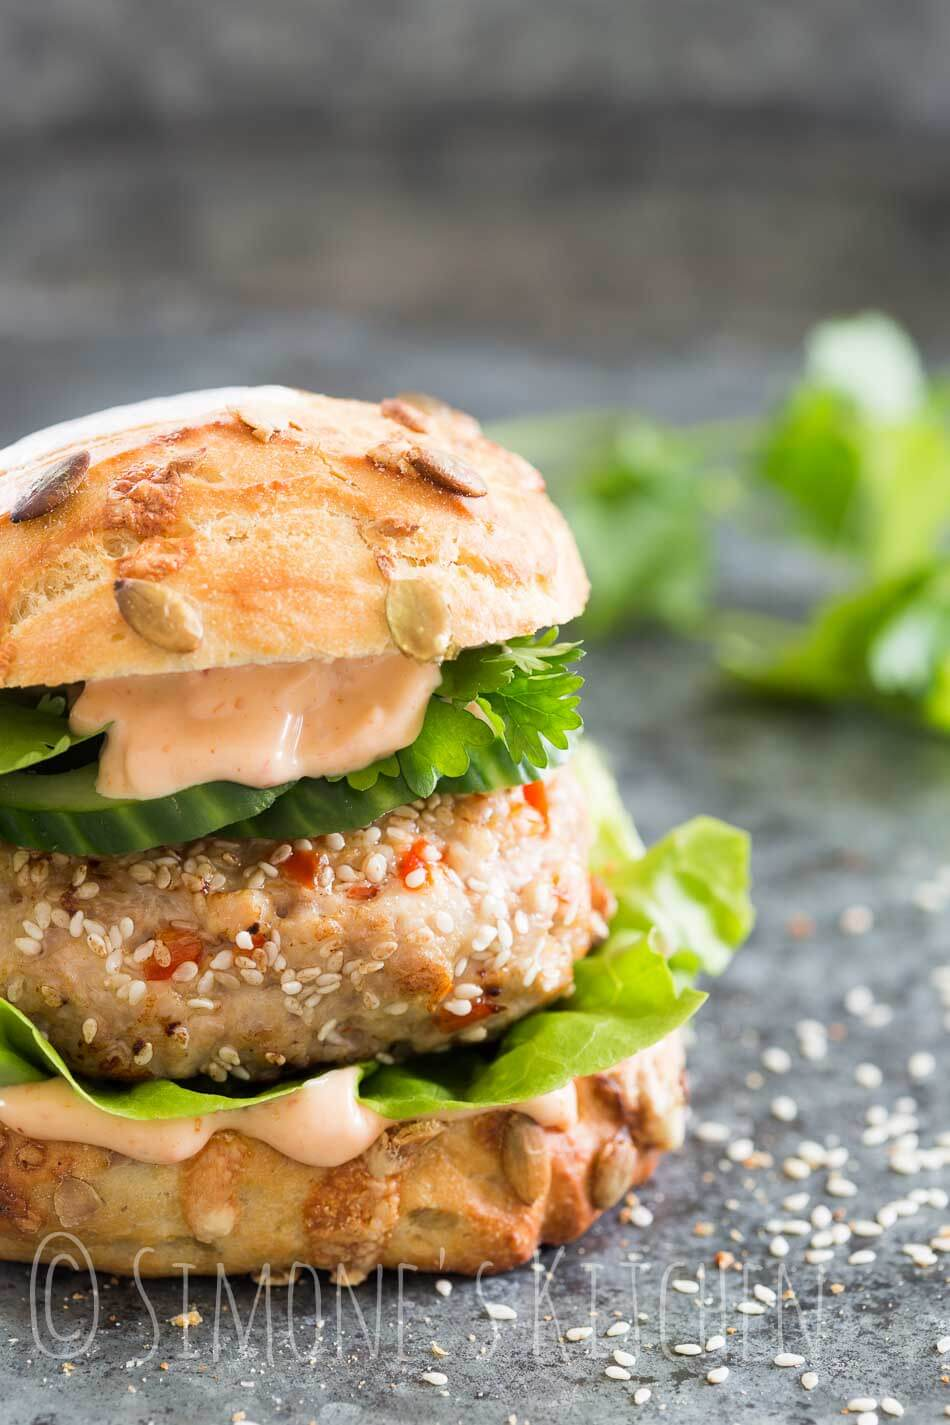 Spicy asian chickenburger with chili mayo | insimoneskitchen.com